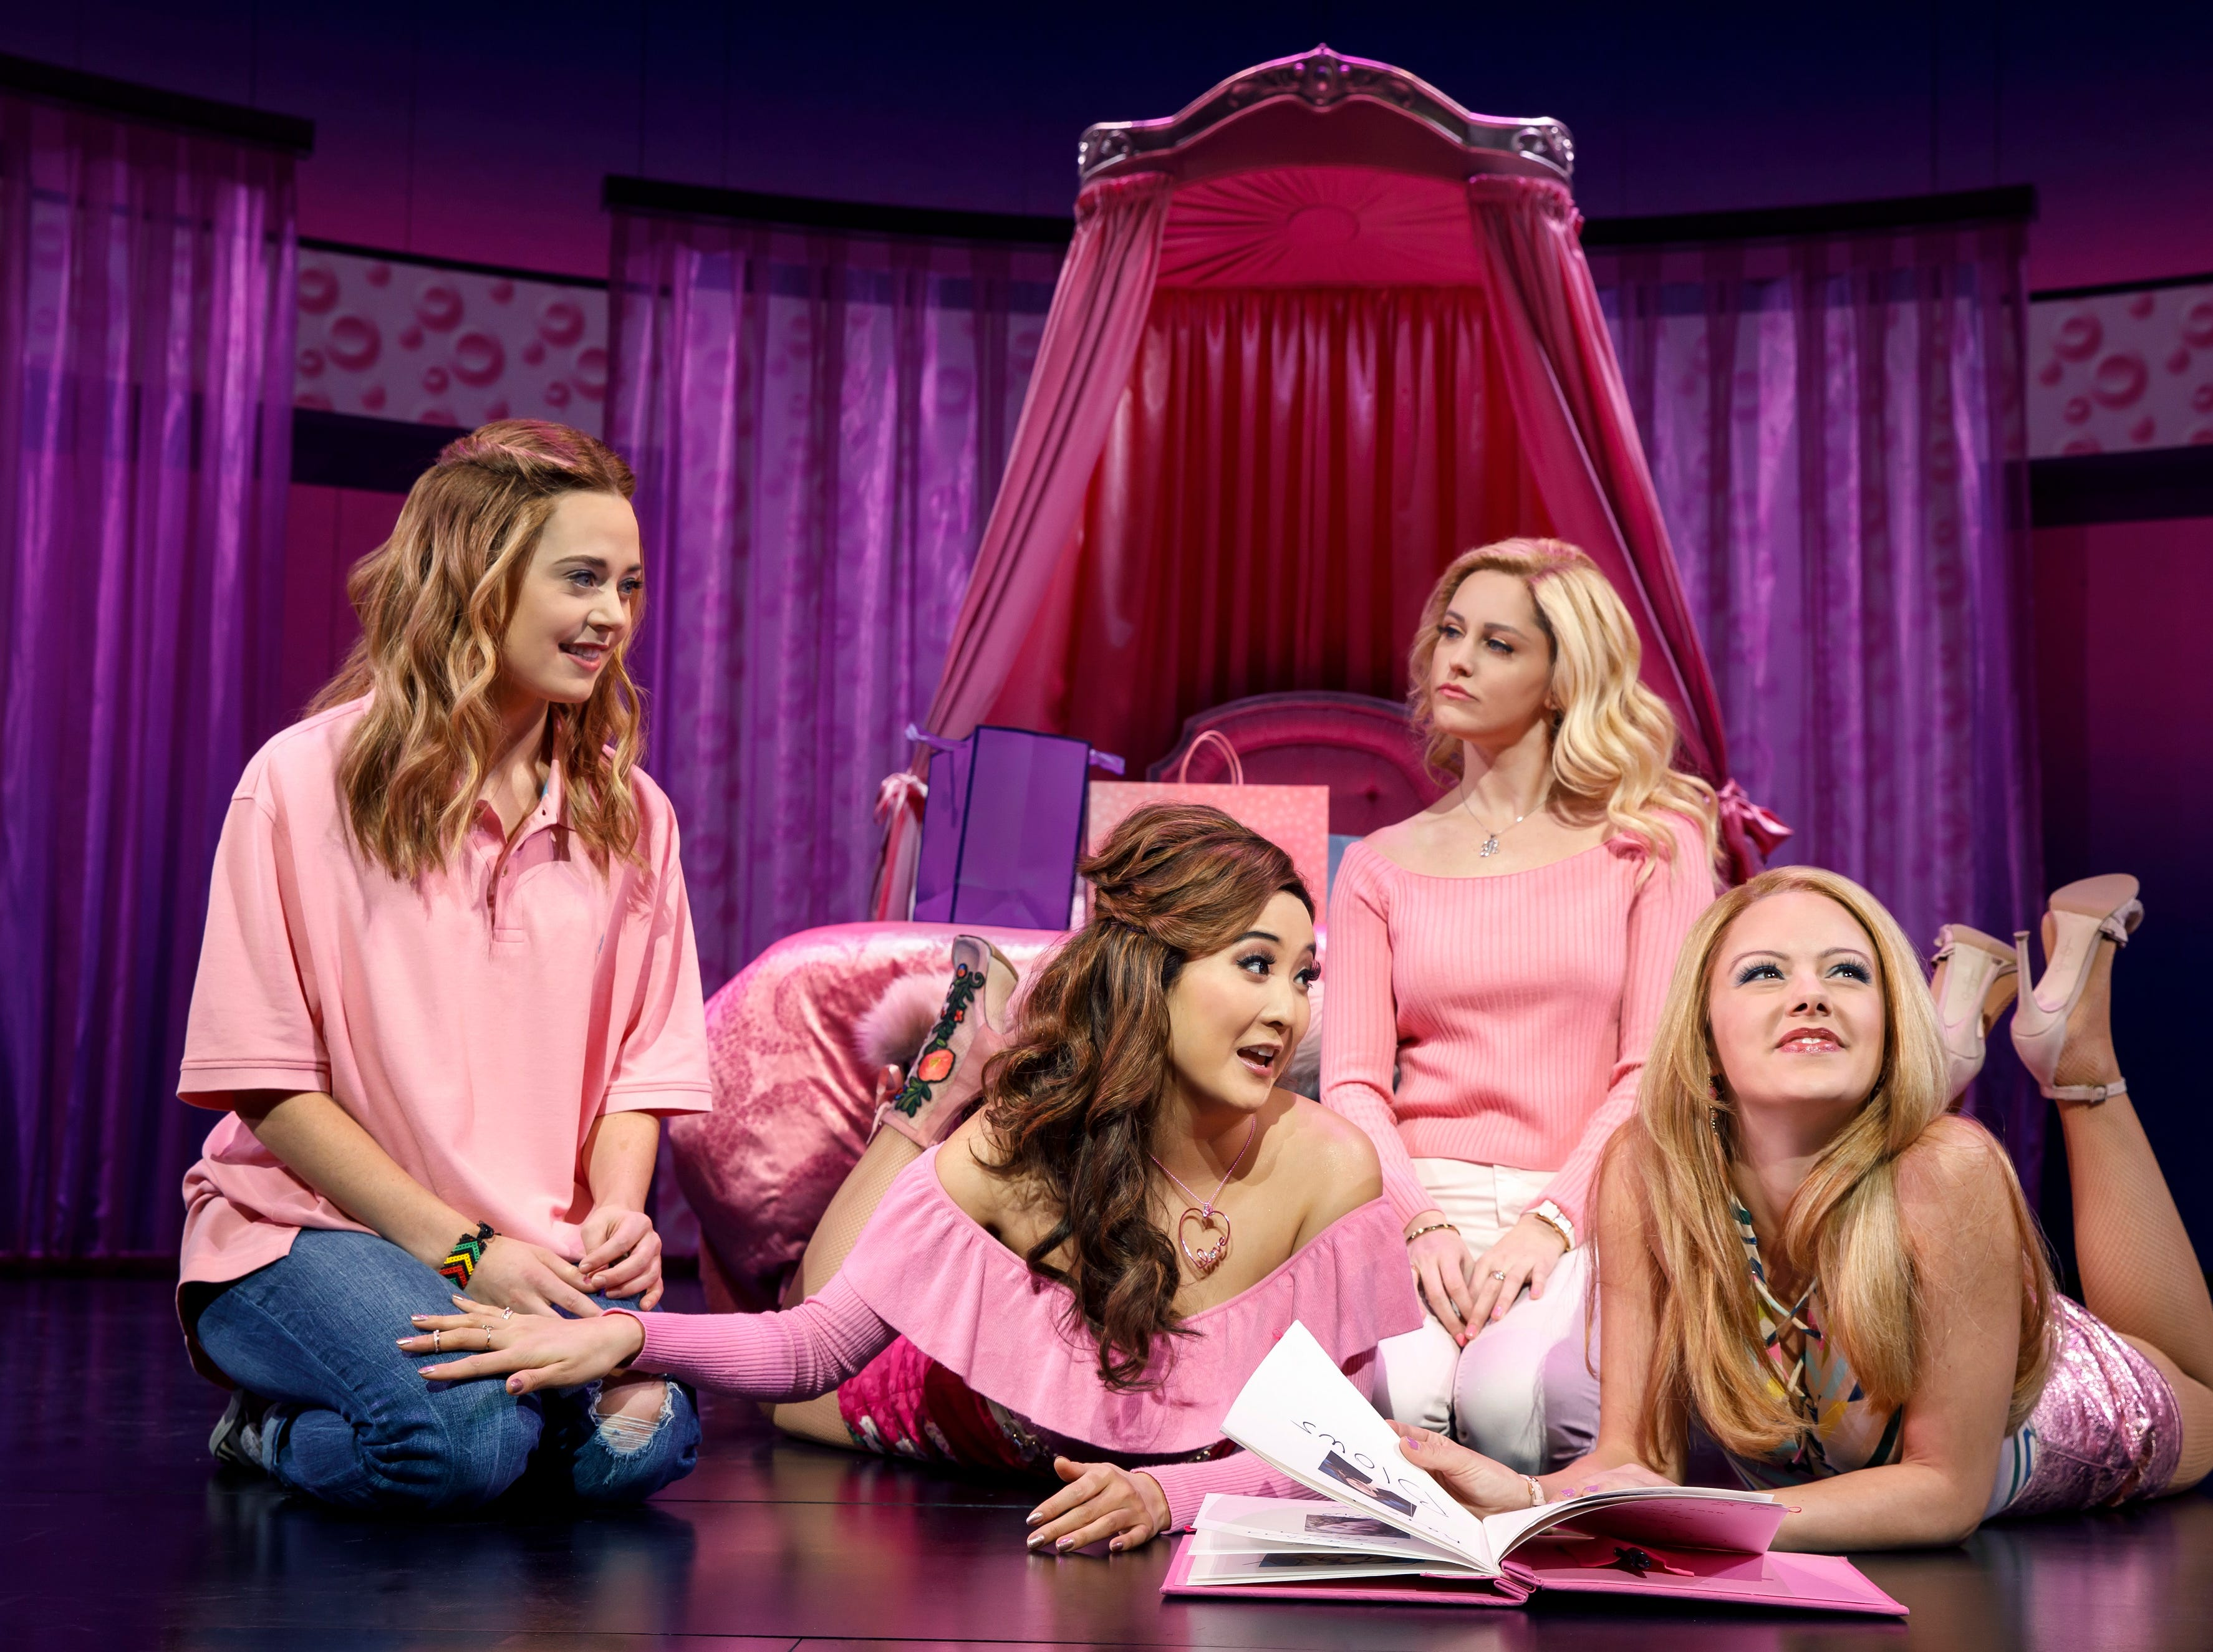 """Sassy, flashy and wonderfully entertaining, Tina Fey's """"Mean Girls"""" film is now a Broadway musical. A touring production will be at the Aronoff Center as part of the Broadway in Cincinnati 2019-2020 season. Seen here are (from L) Erika Henningsen, Ashley Park, Taylor Louderman and Kate Rockwell."""